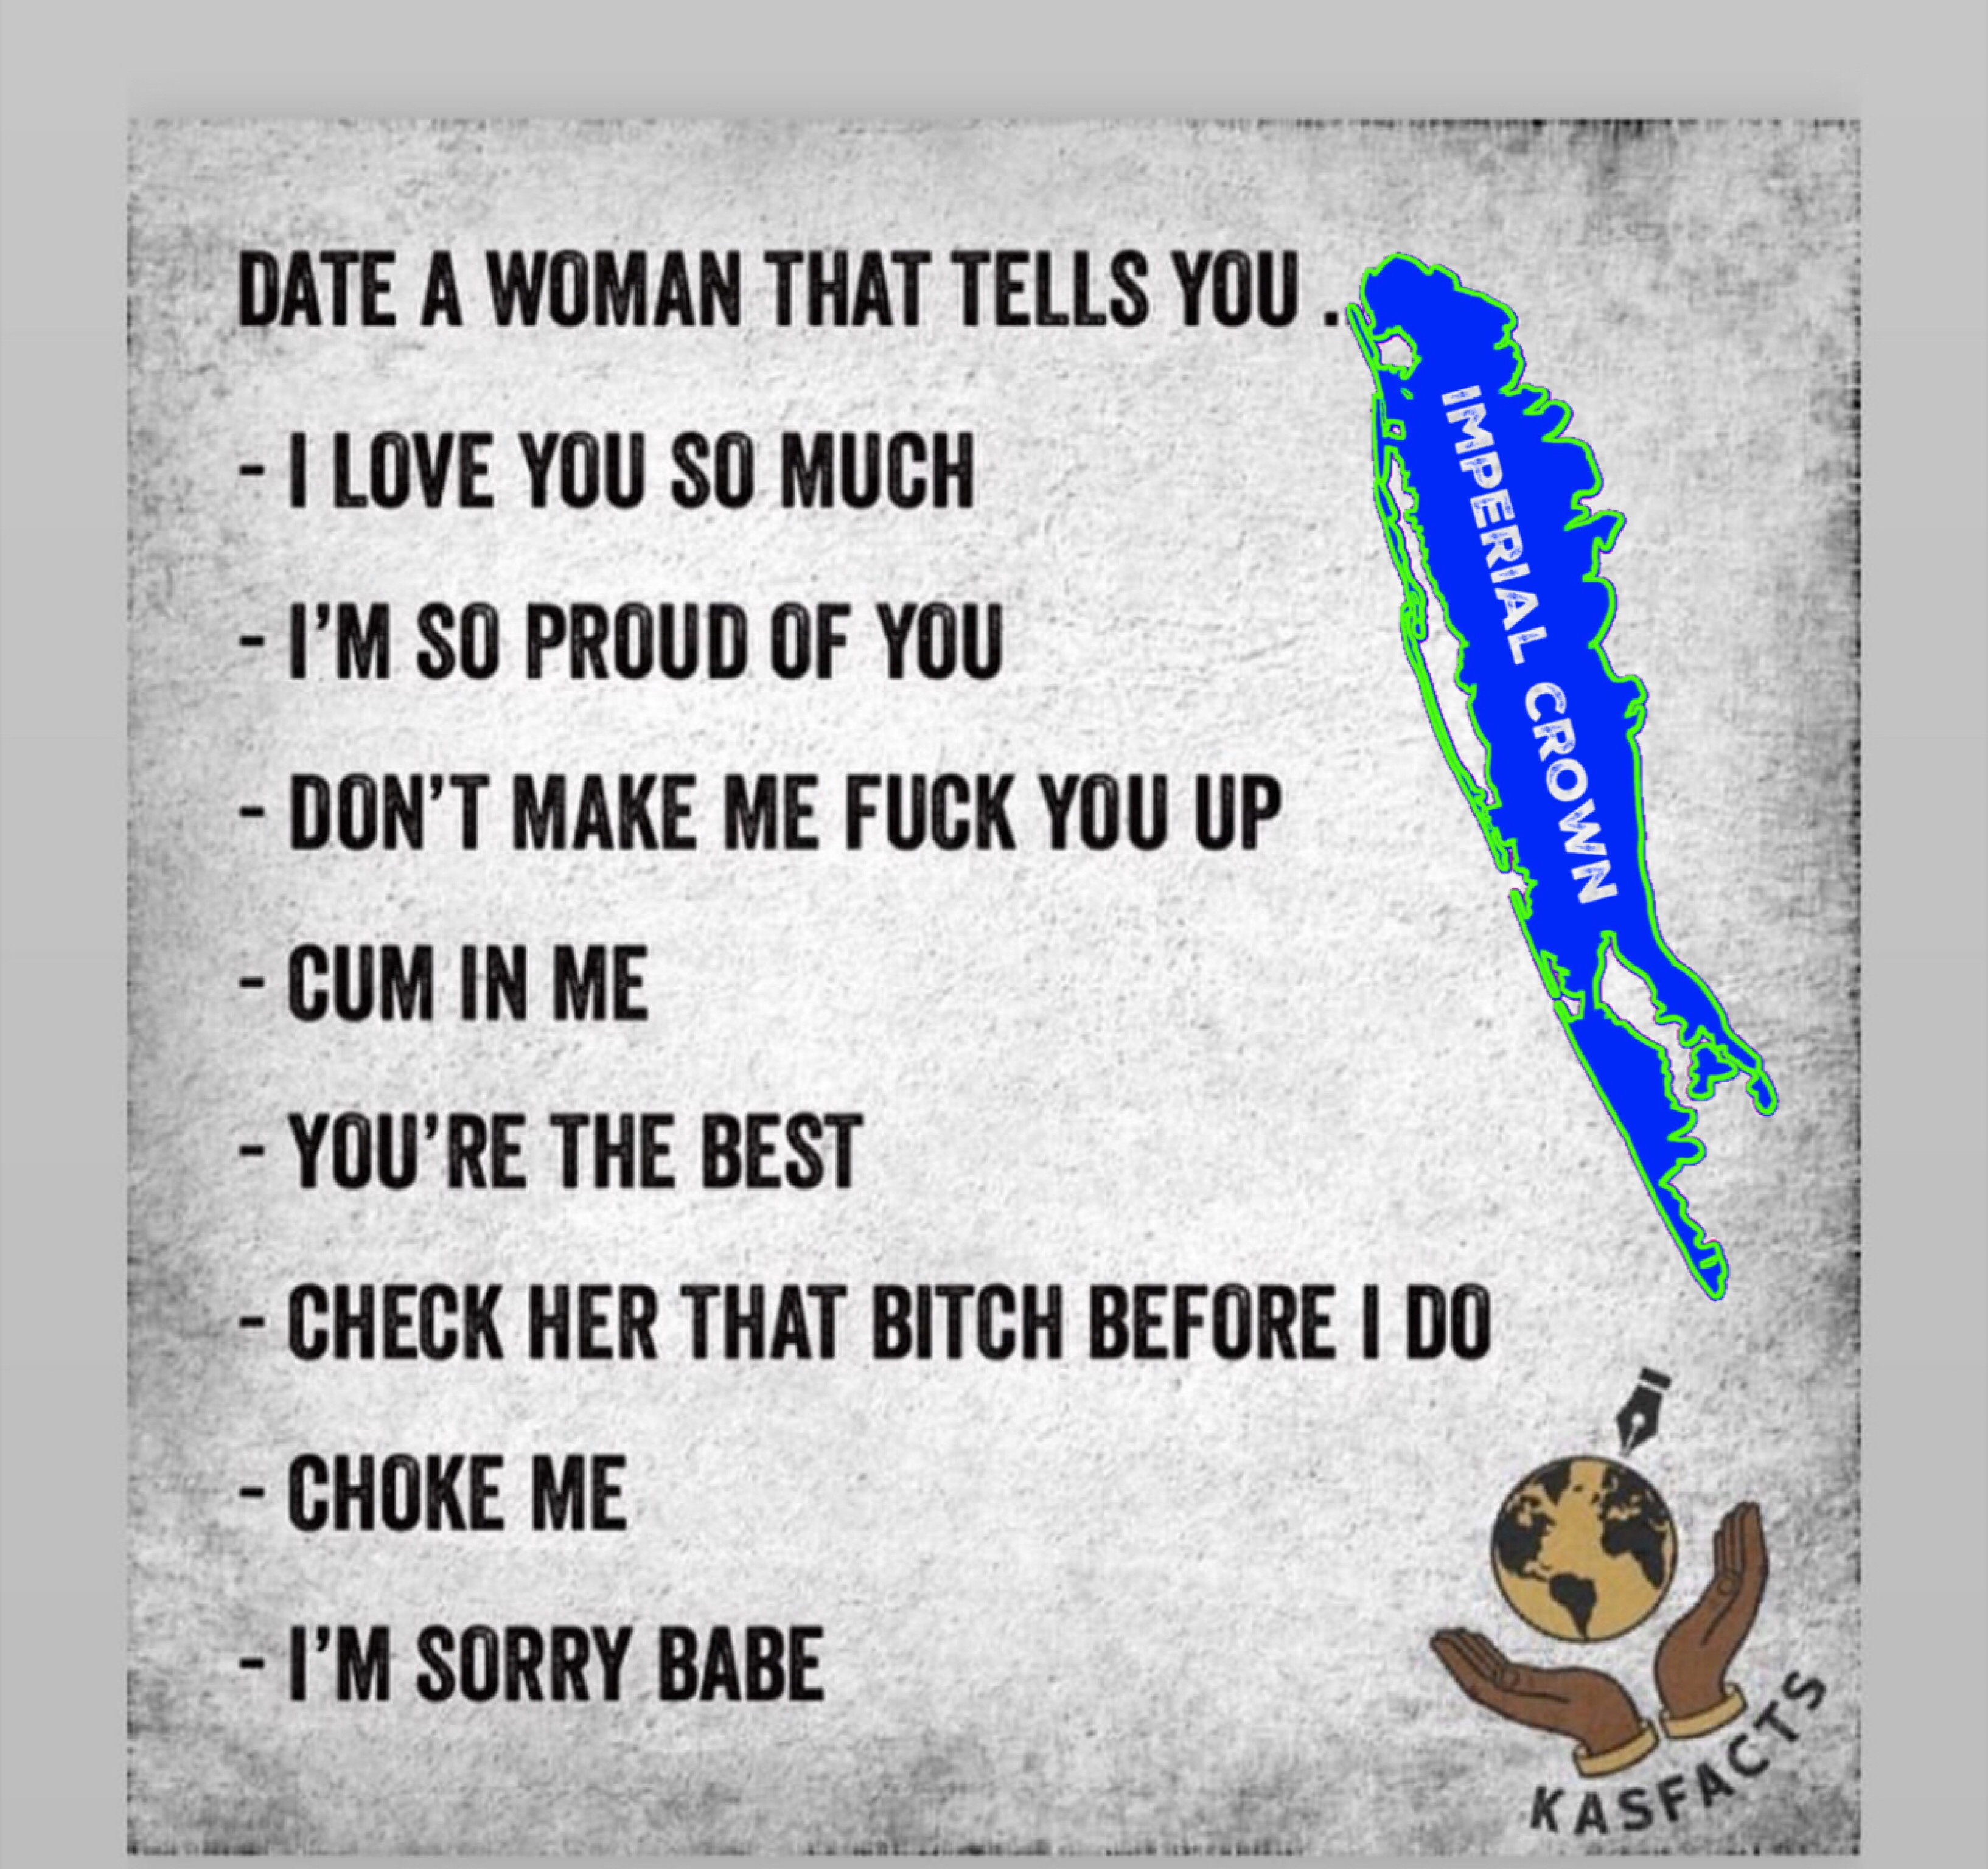 Date a woman that tells you